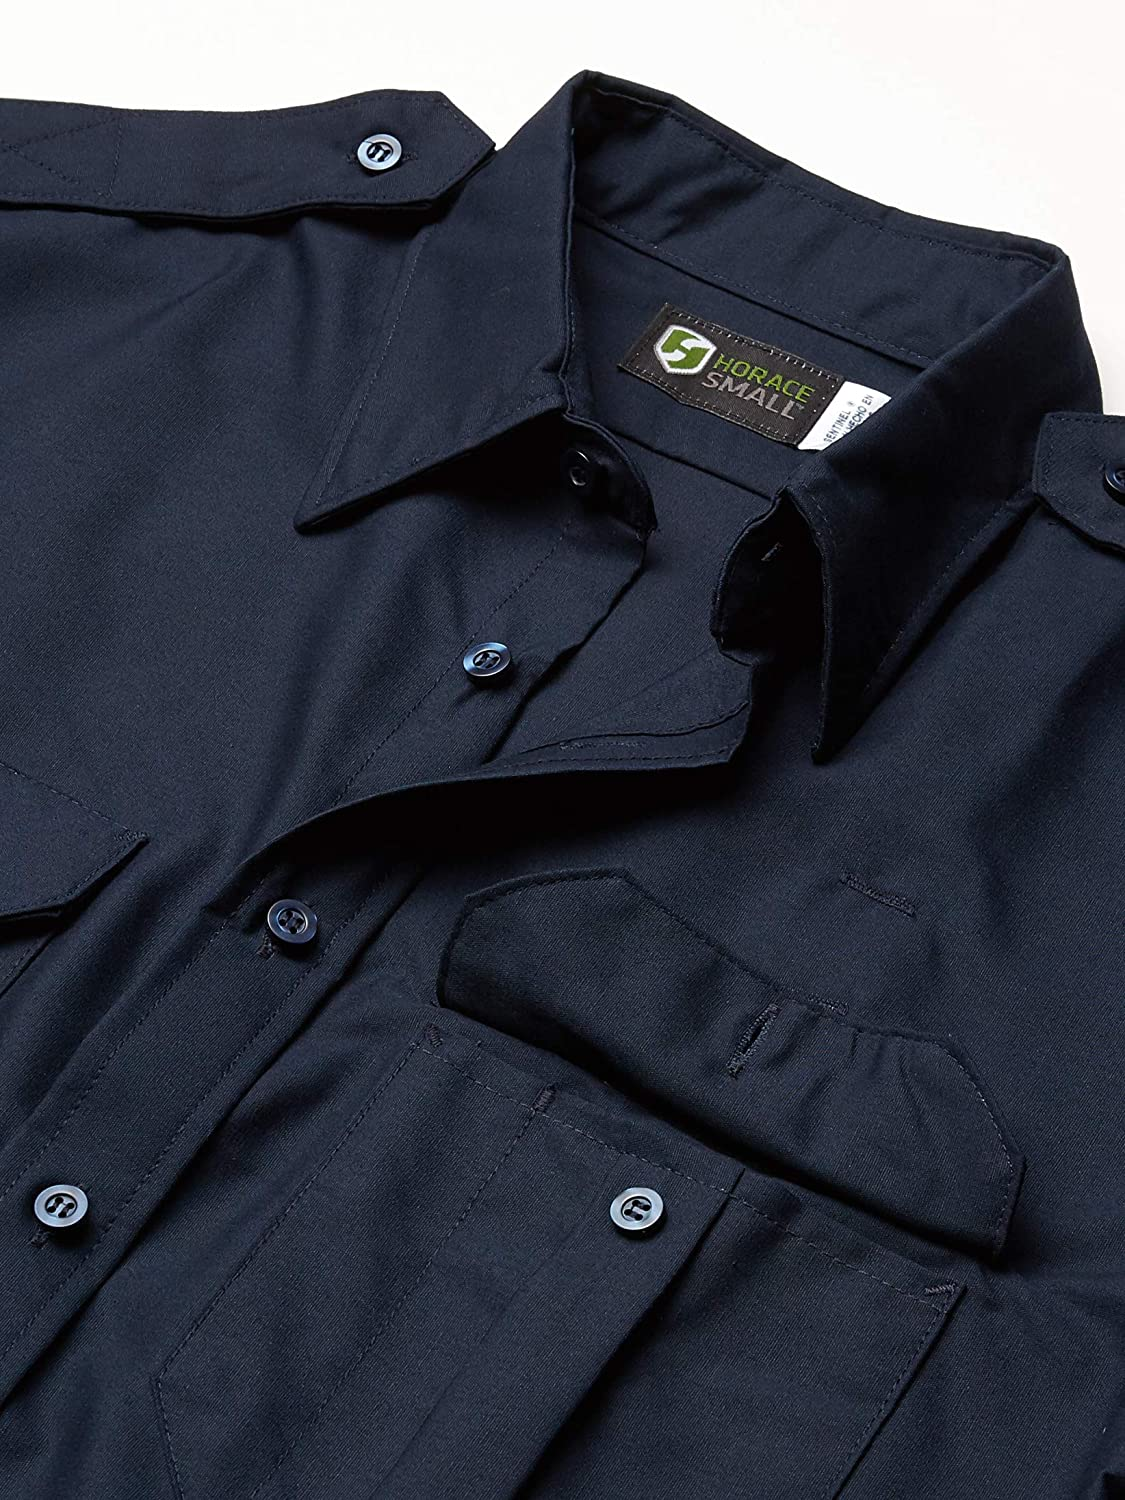 Horace Small Mens Classic Short Sleeve Security Shirt